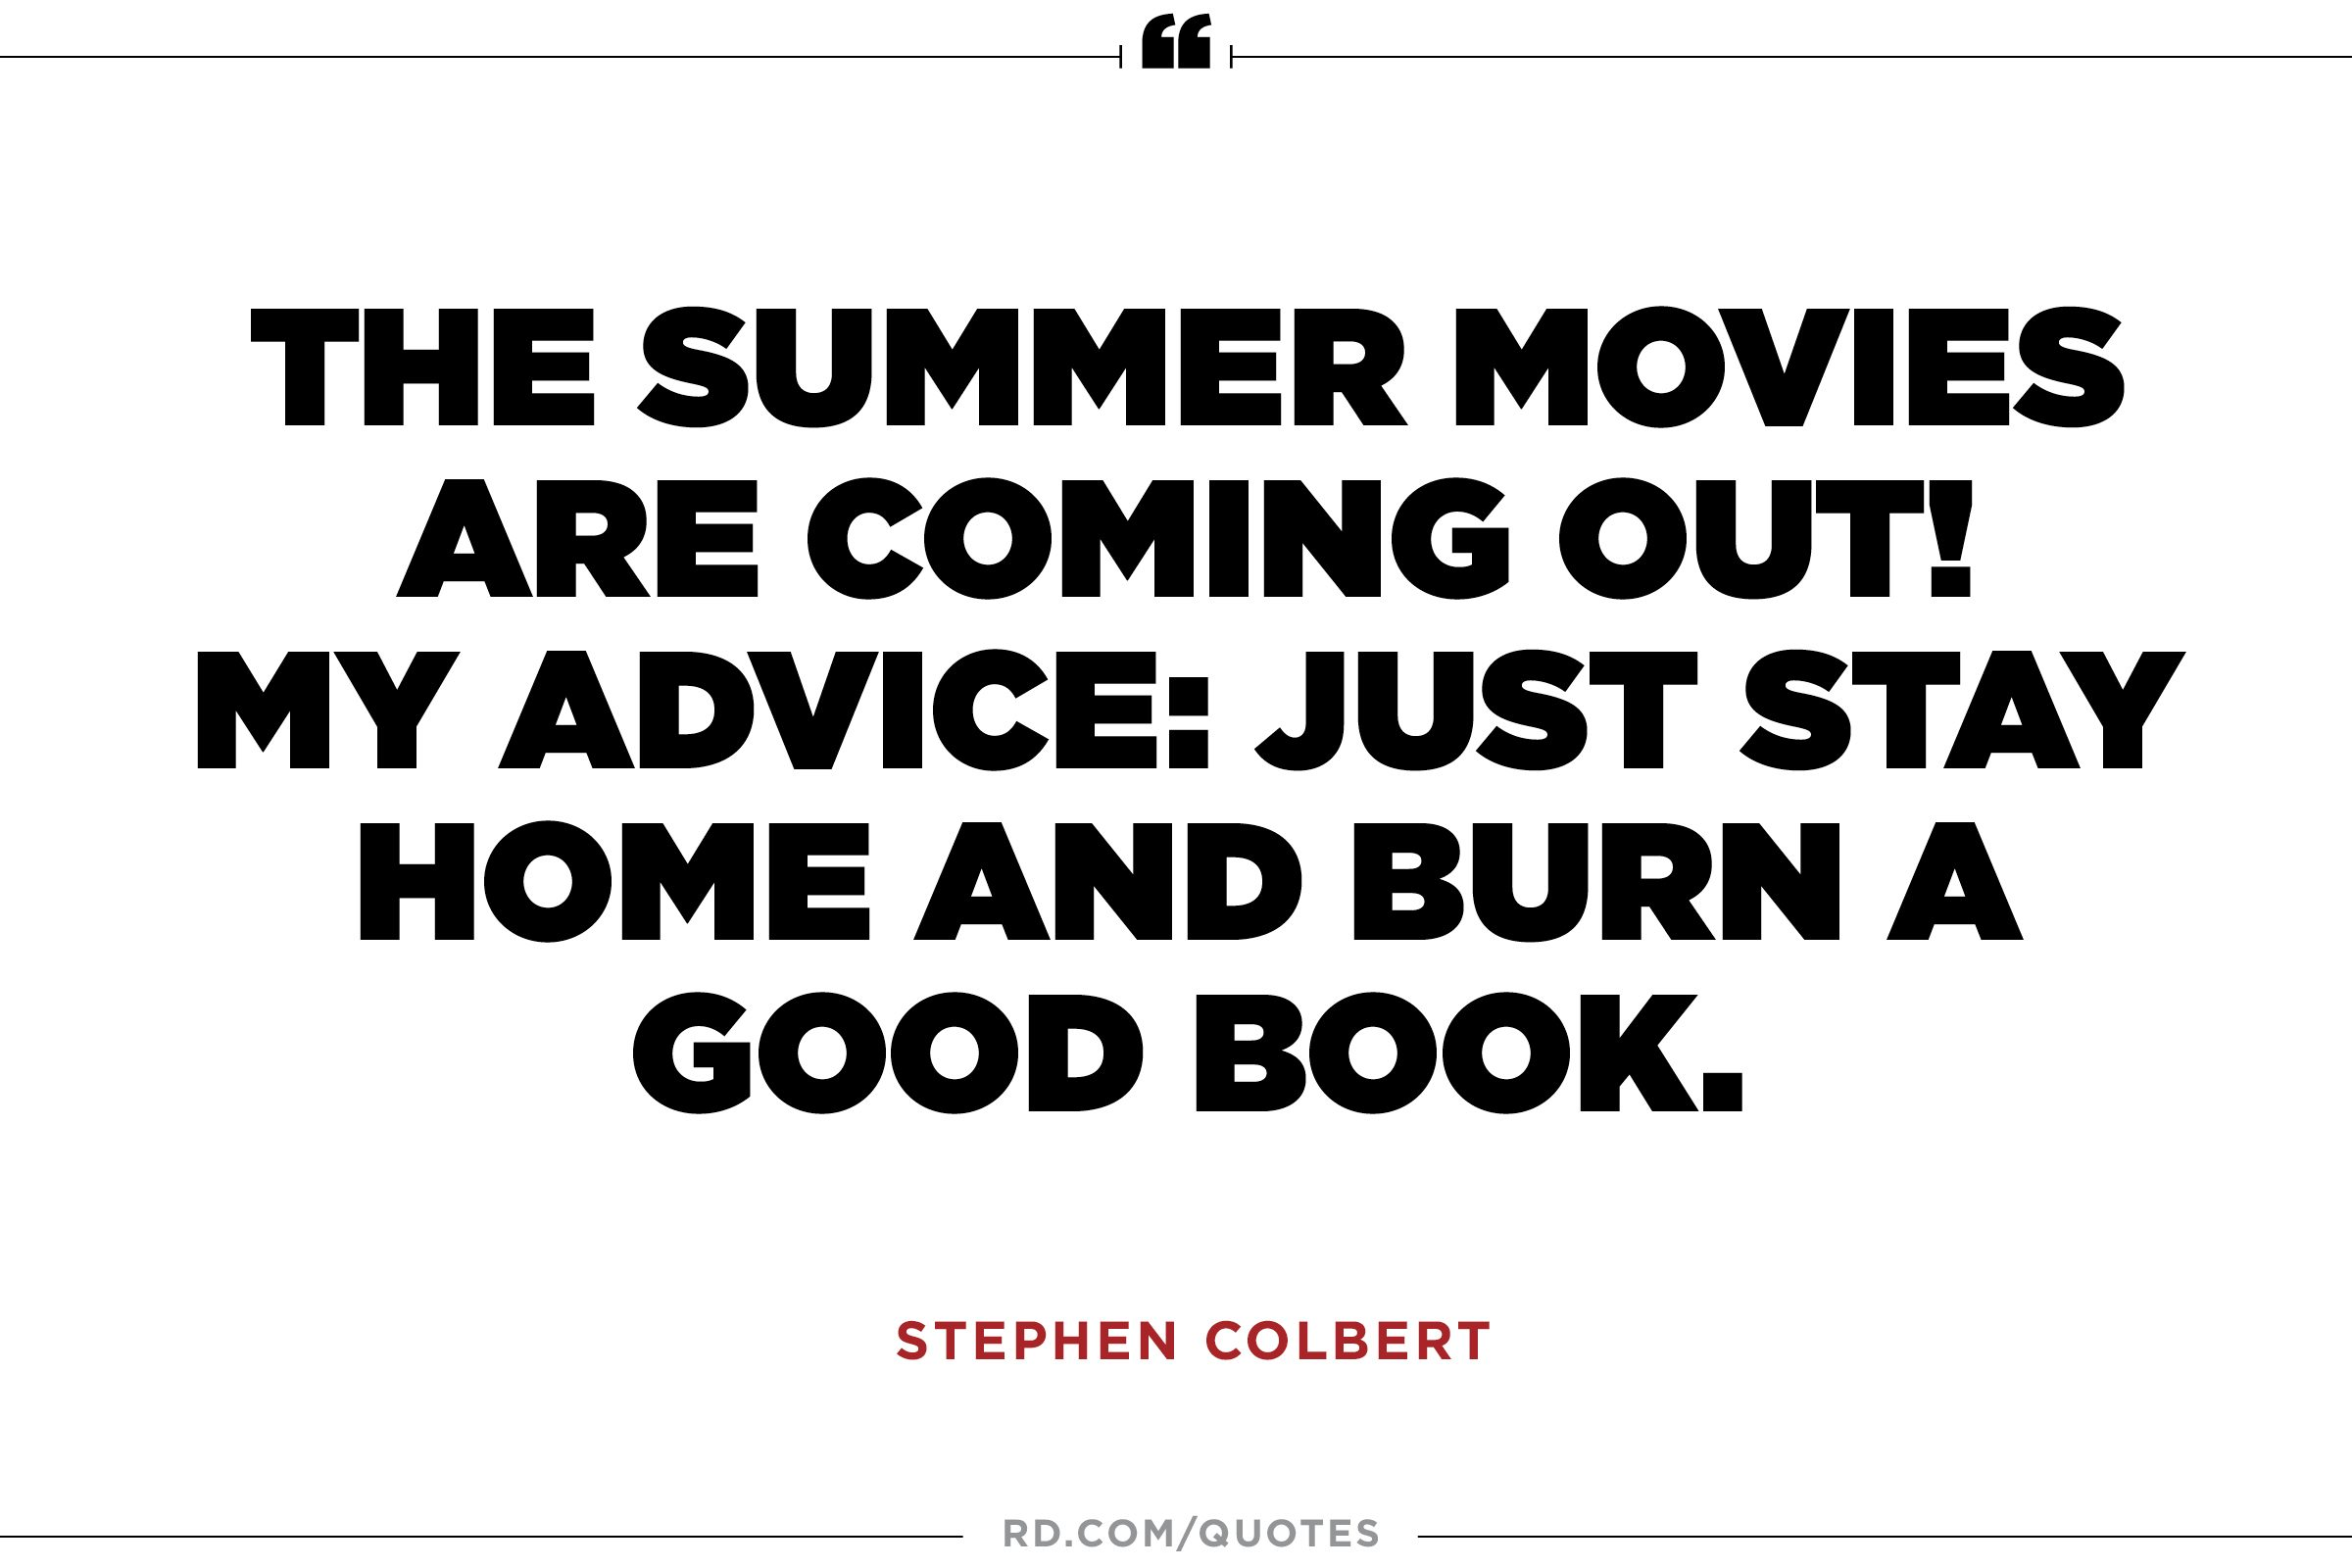 The summer movies...